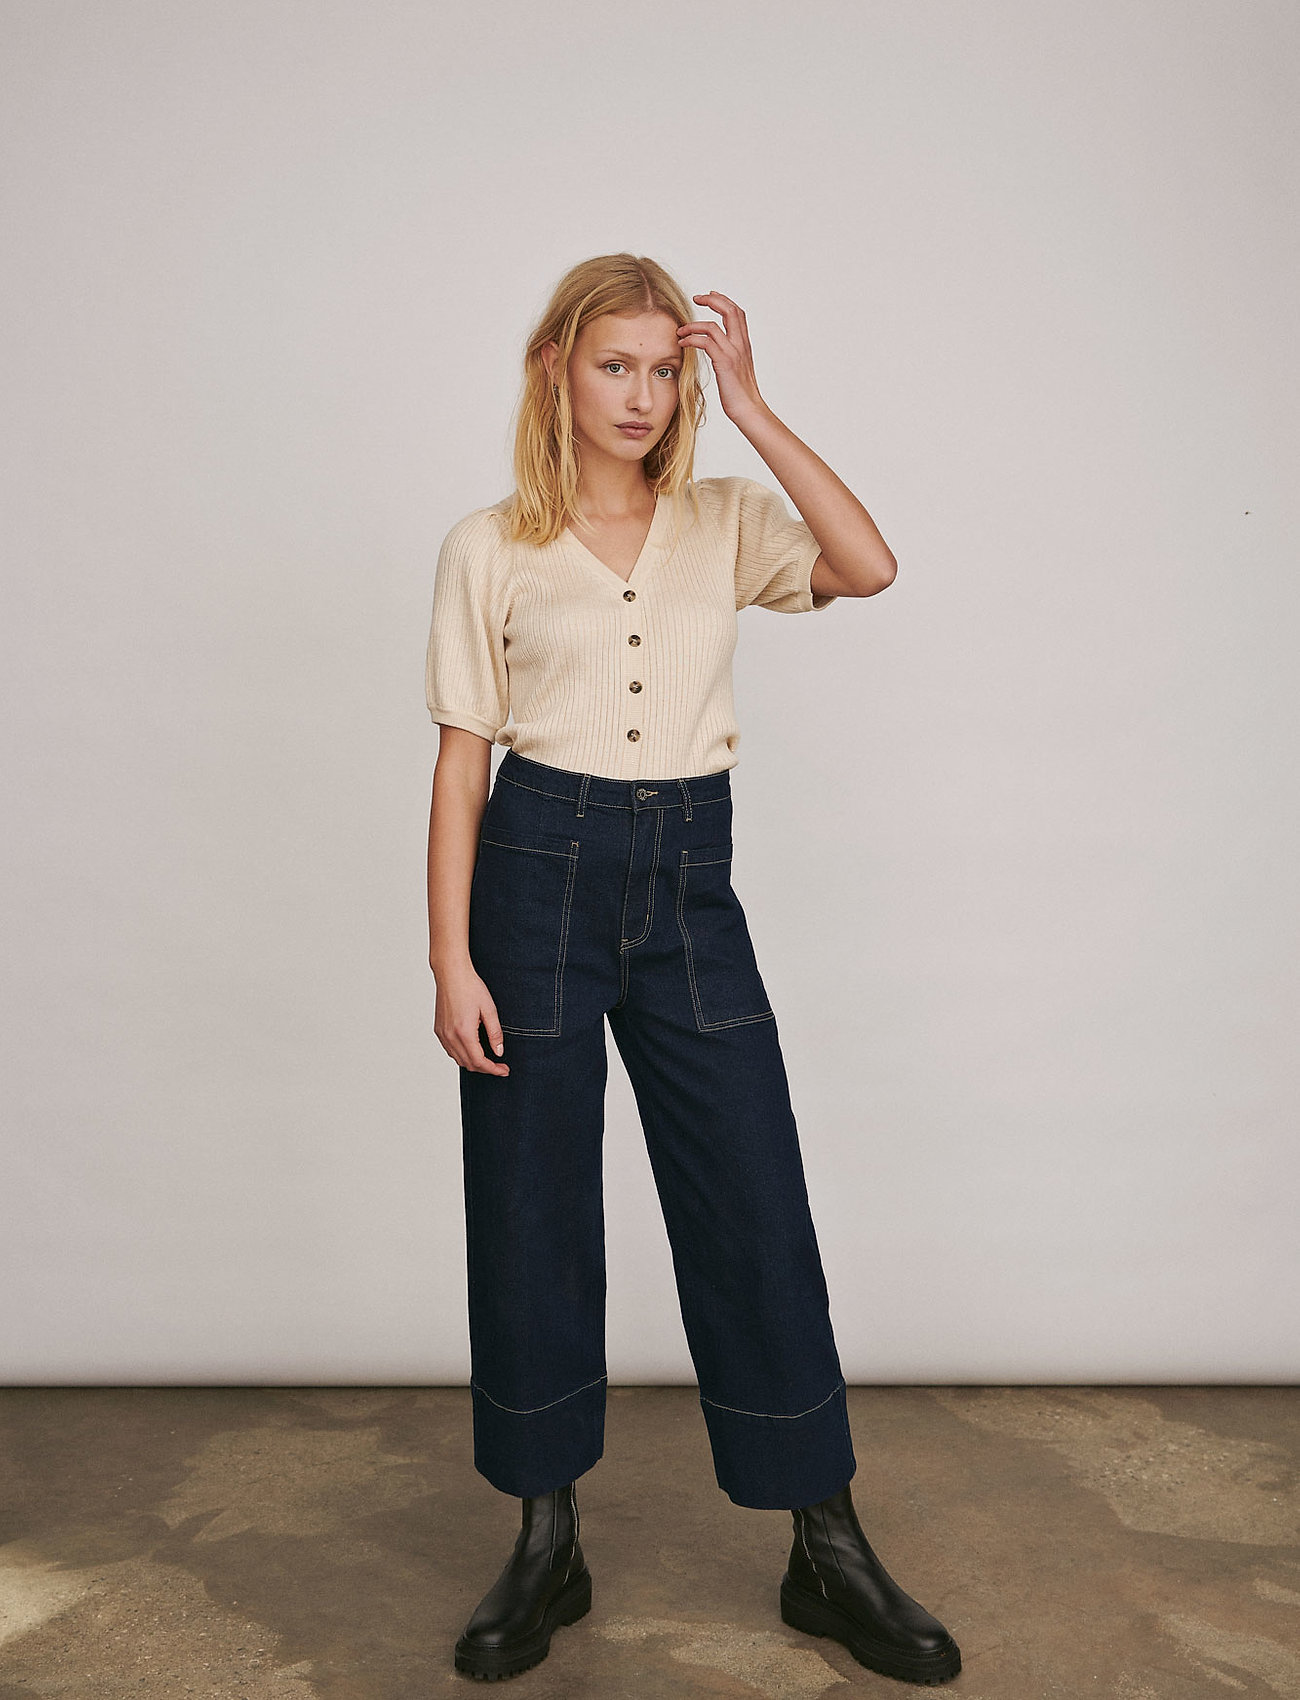 Soft Rebels - Janet High Waist Jeans - brede jeans - rinse wash blue - 0